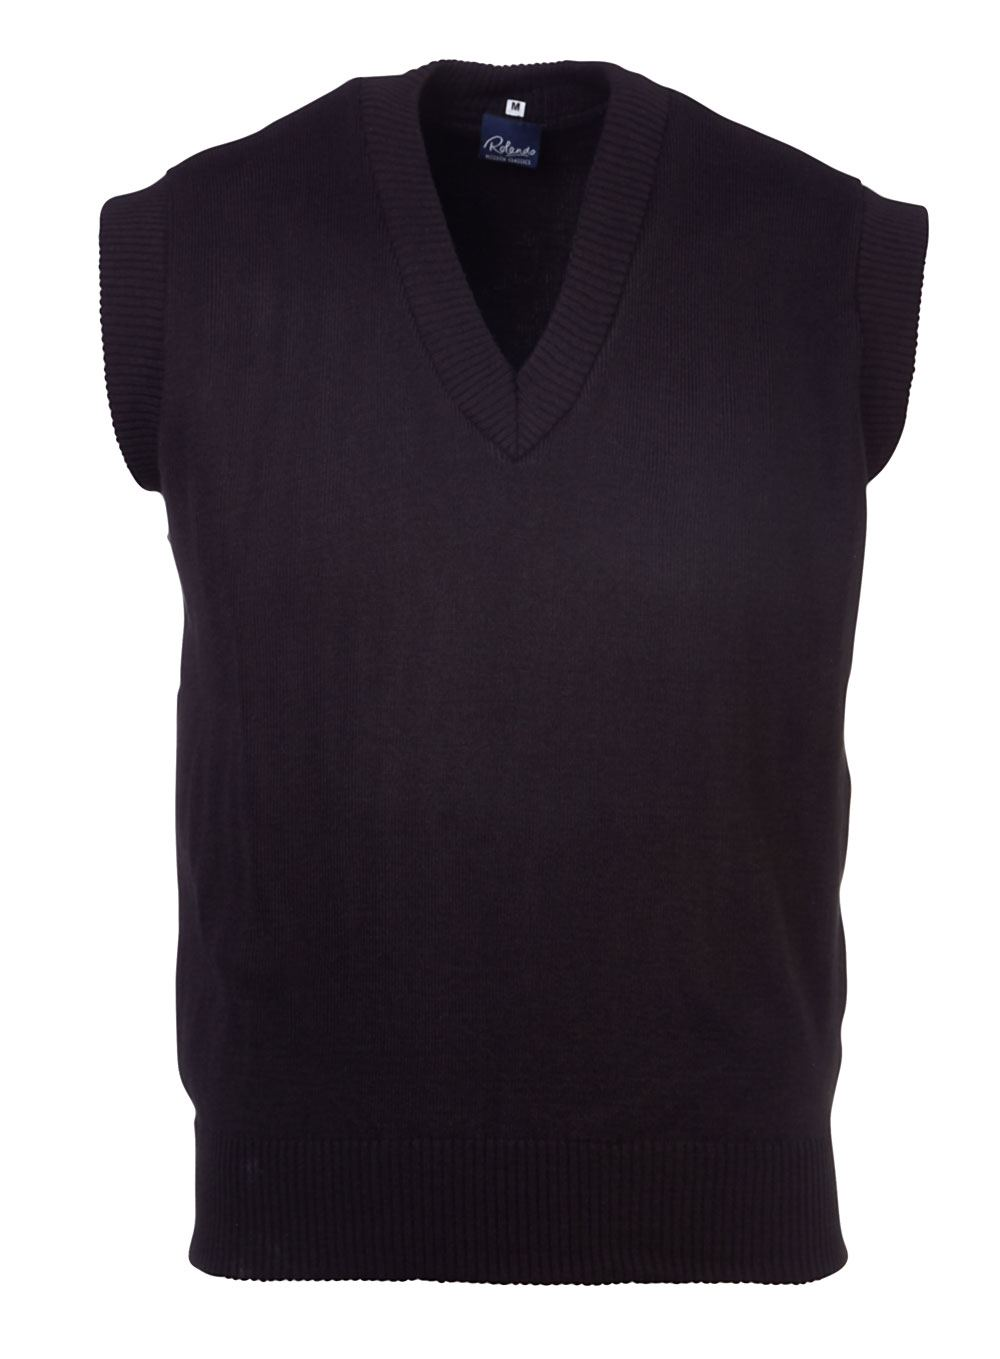 Sleeveless Pullover - Black